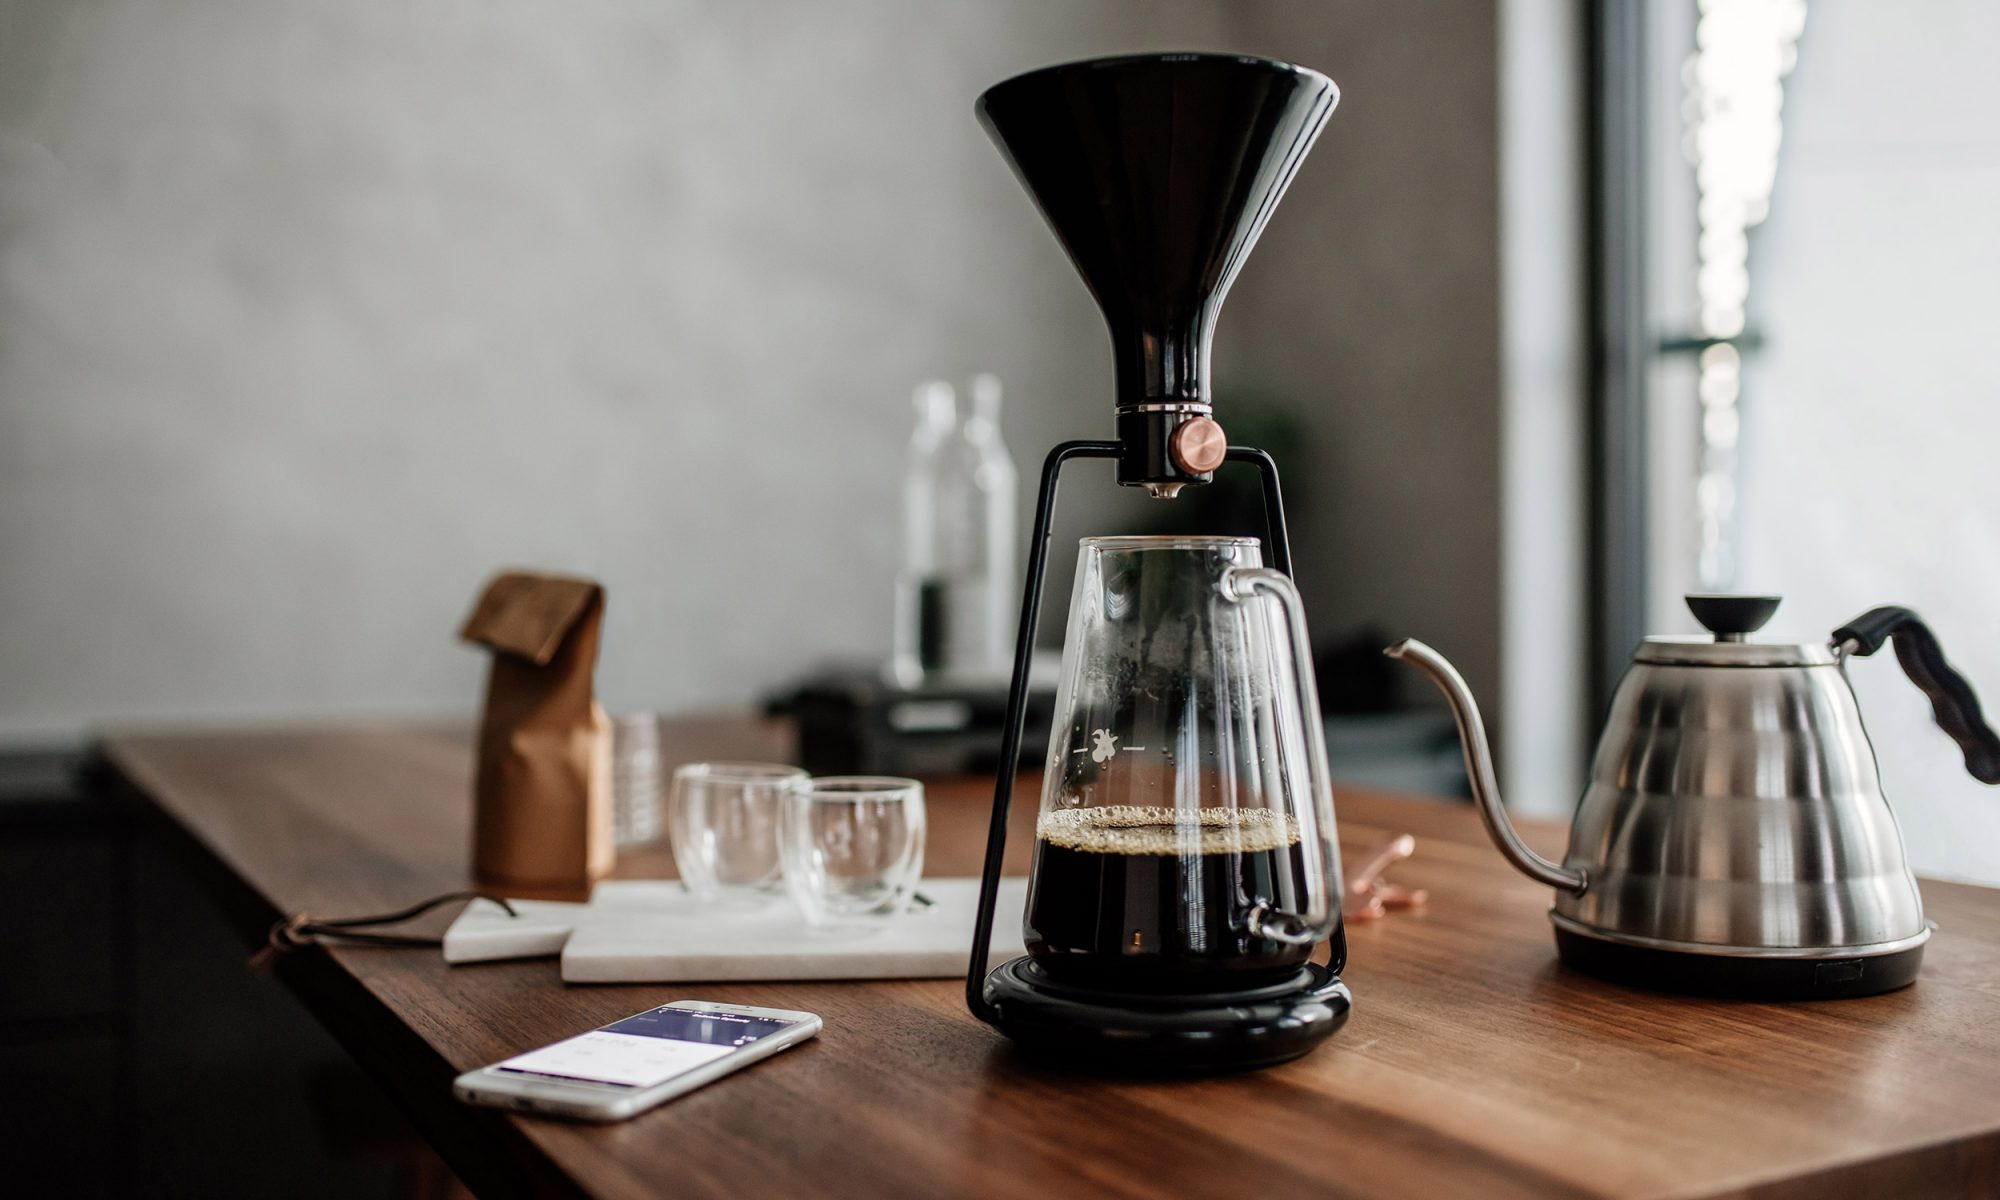 EC: This 3-in-1 Coffee Maker Can Make Pour-Over, French Press, and Cold Brew